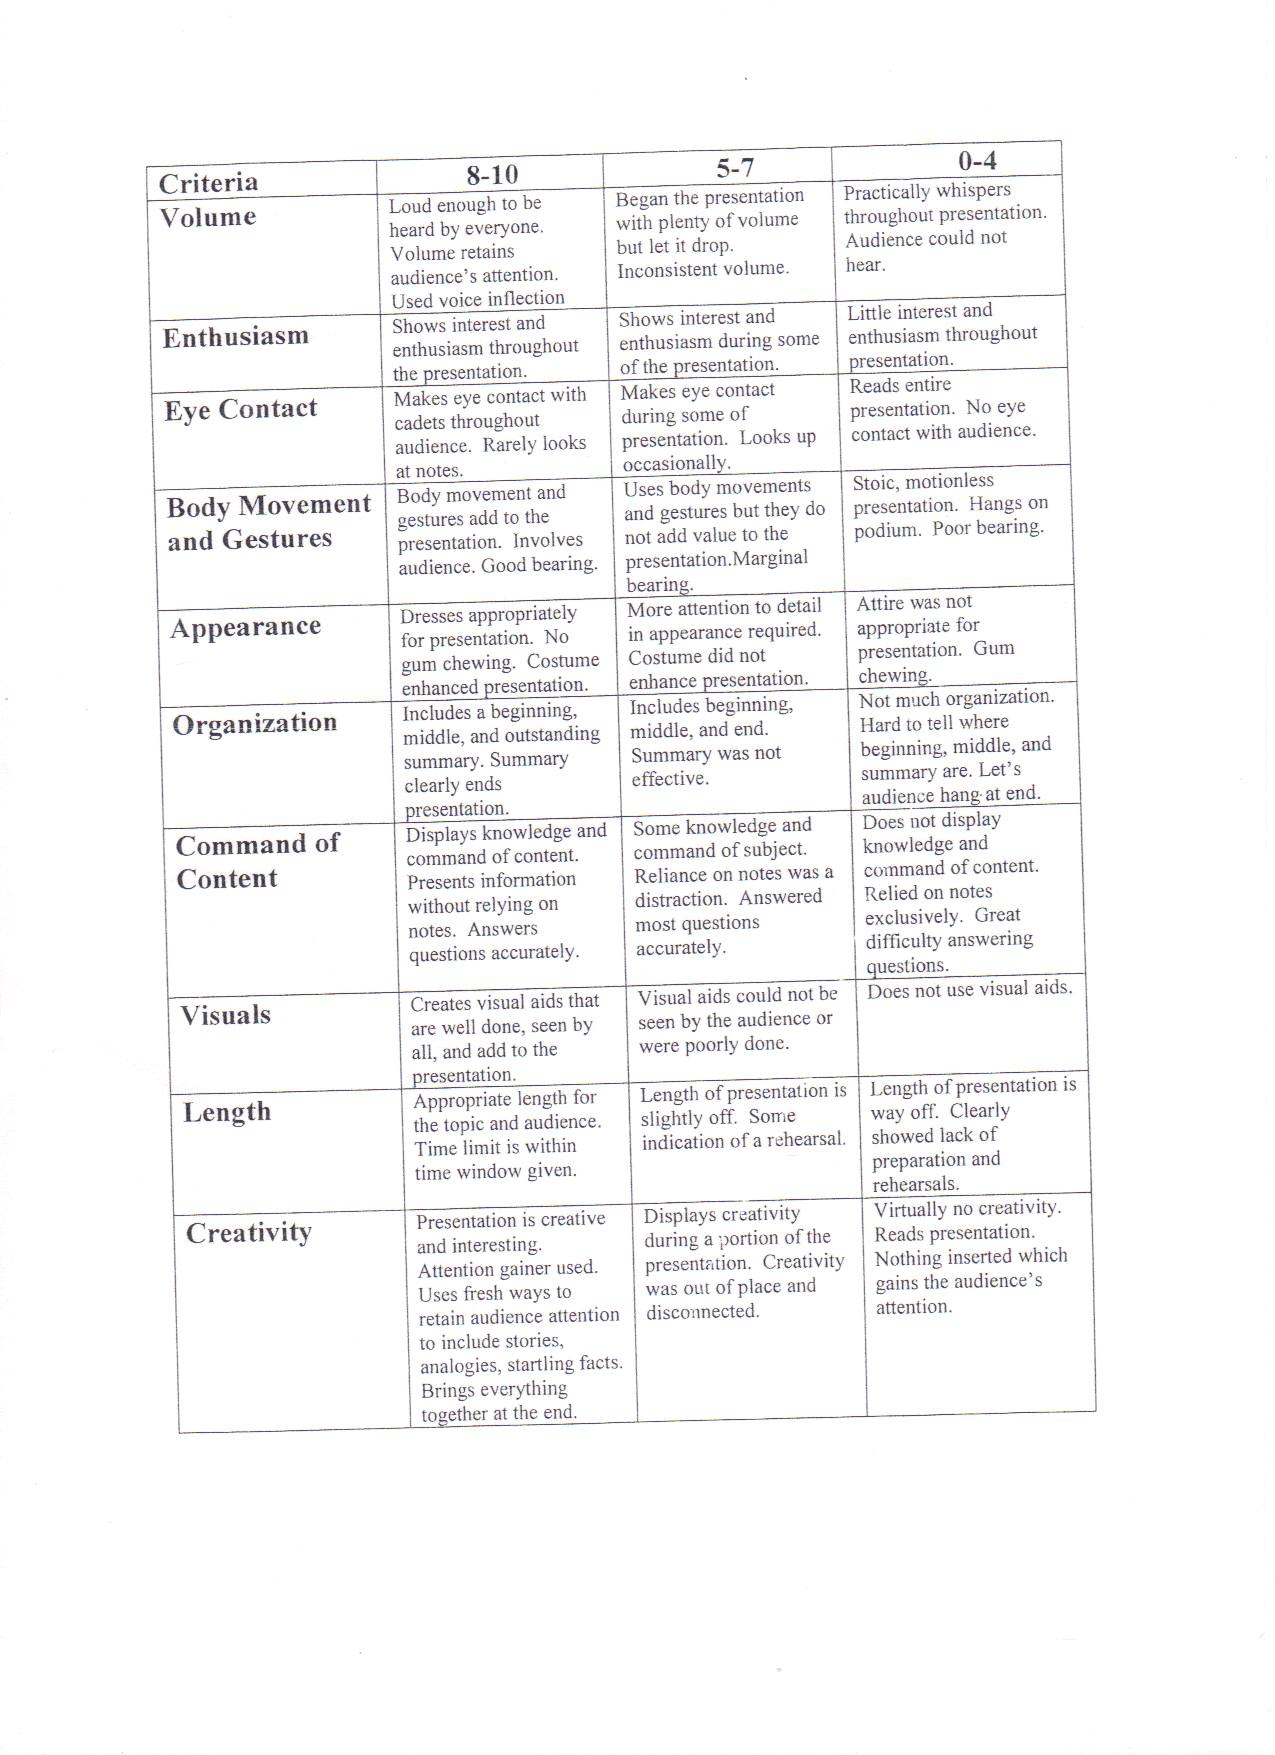 nap ii rubric and questions answers Microeconomics fall 2014 assignment # 1  prepare your answers to the questions before you open the assignment input  and the grading rubric in the course guide .